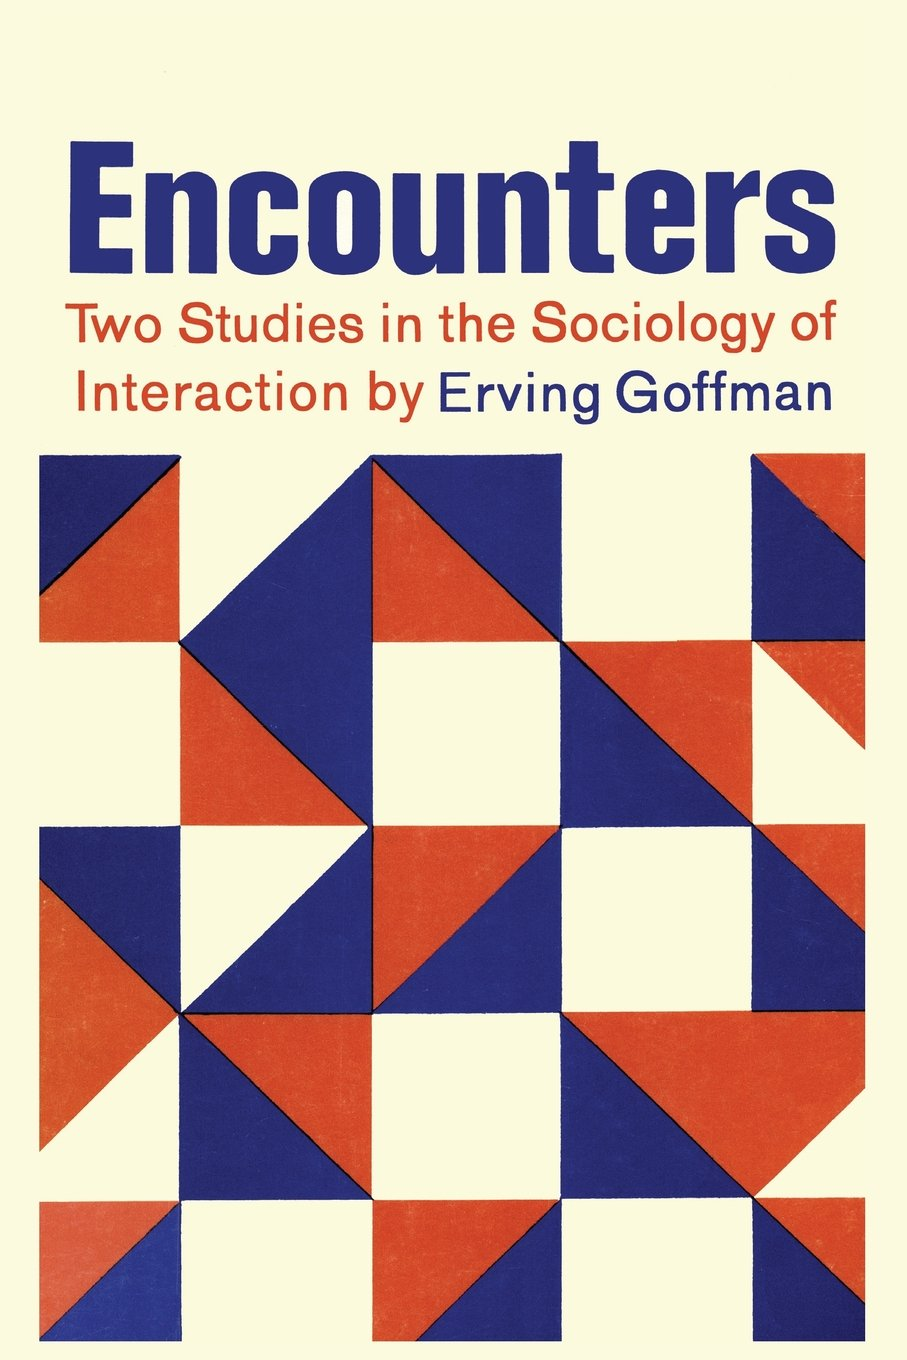 erving goffman presentation self essay  erving goffman presentation self essay